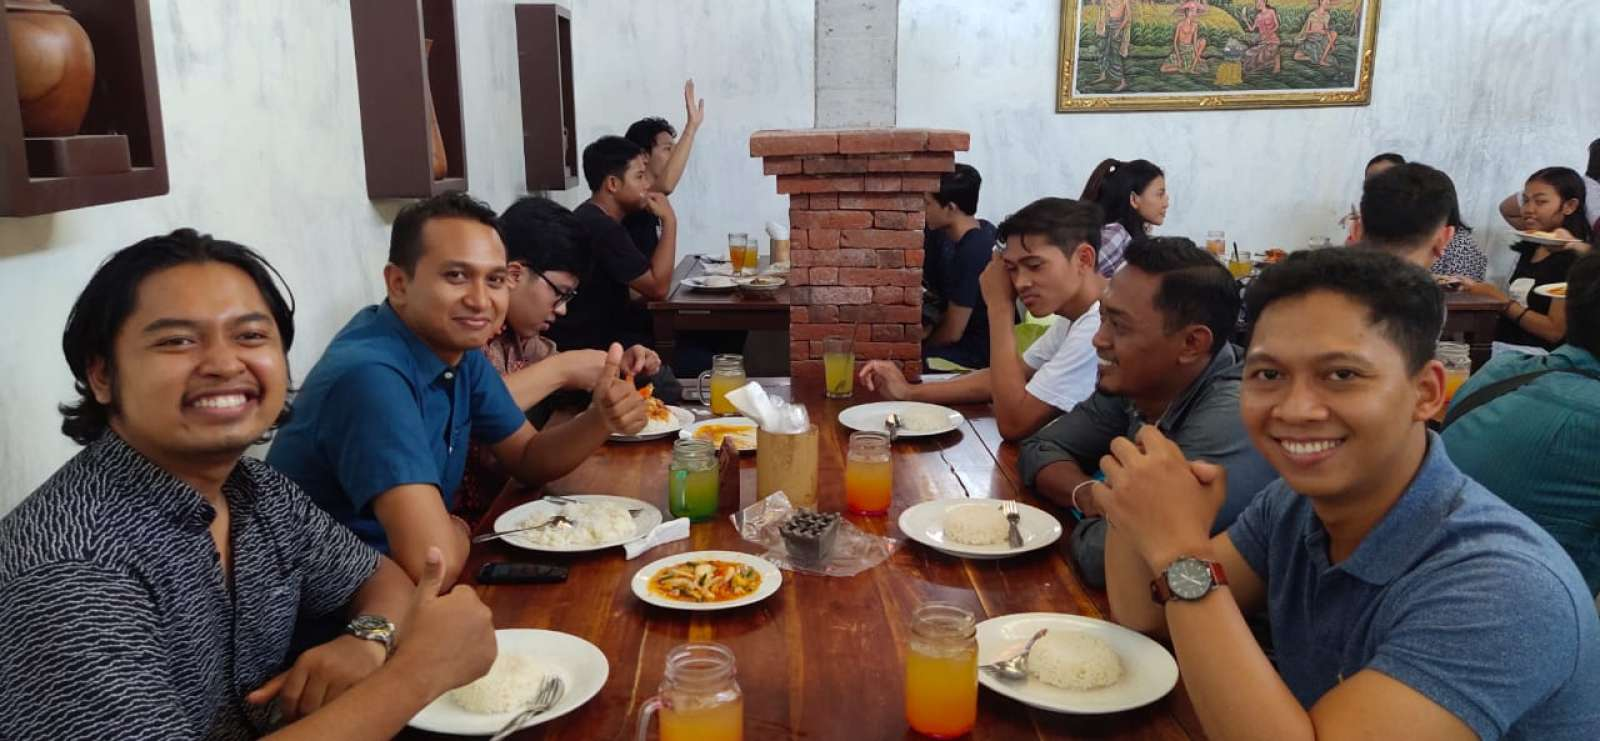 The Gathering of Emporio Architect Bali's Team at Kepiting Pan Kuncung 2